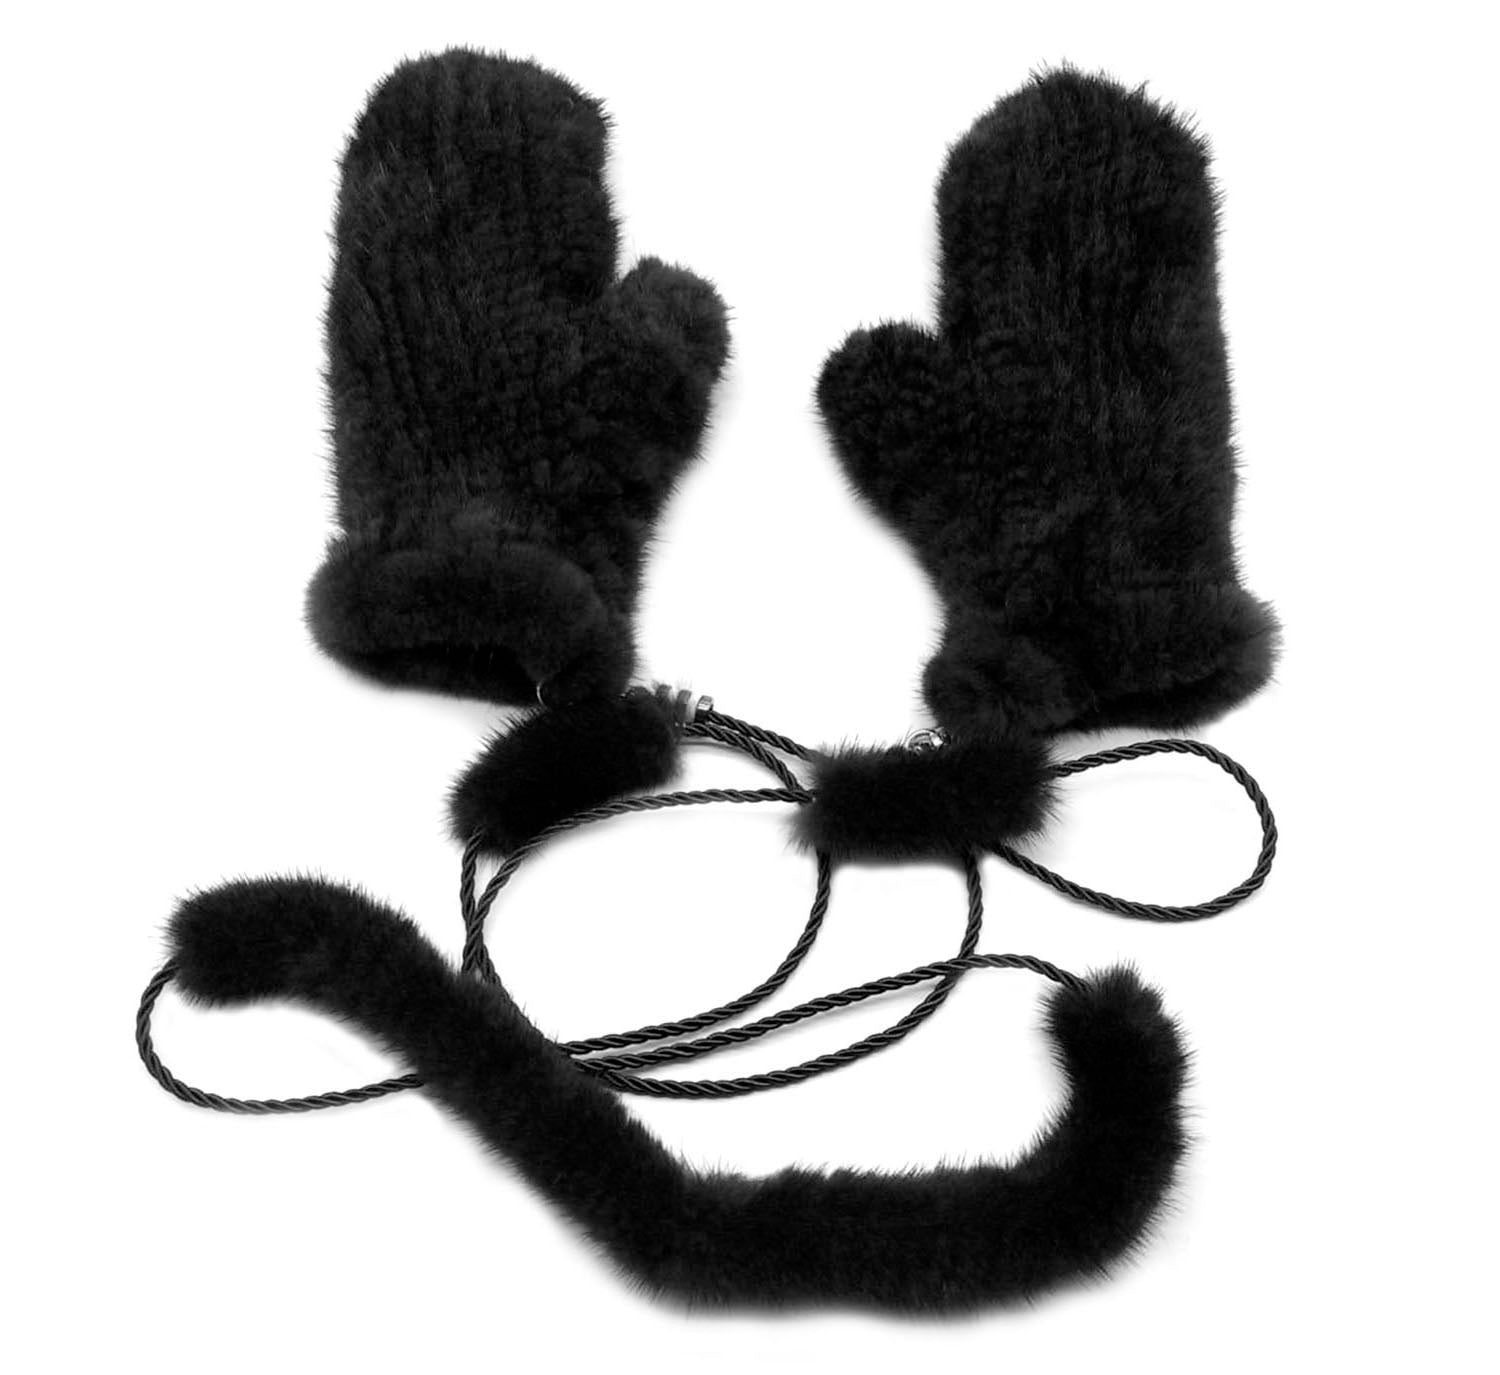 Mink Fur Mittens with String